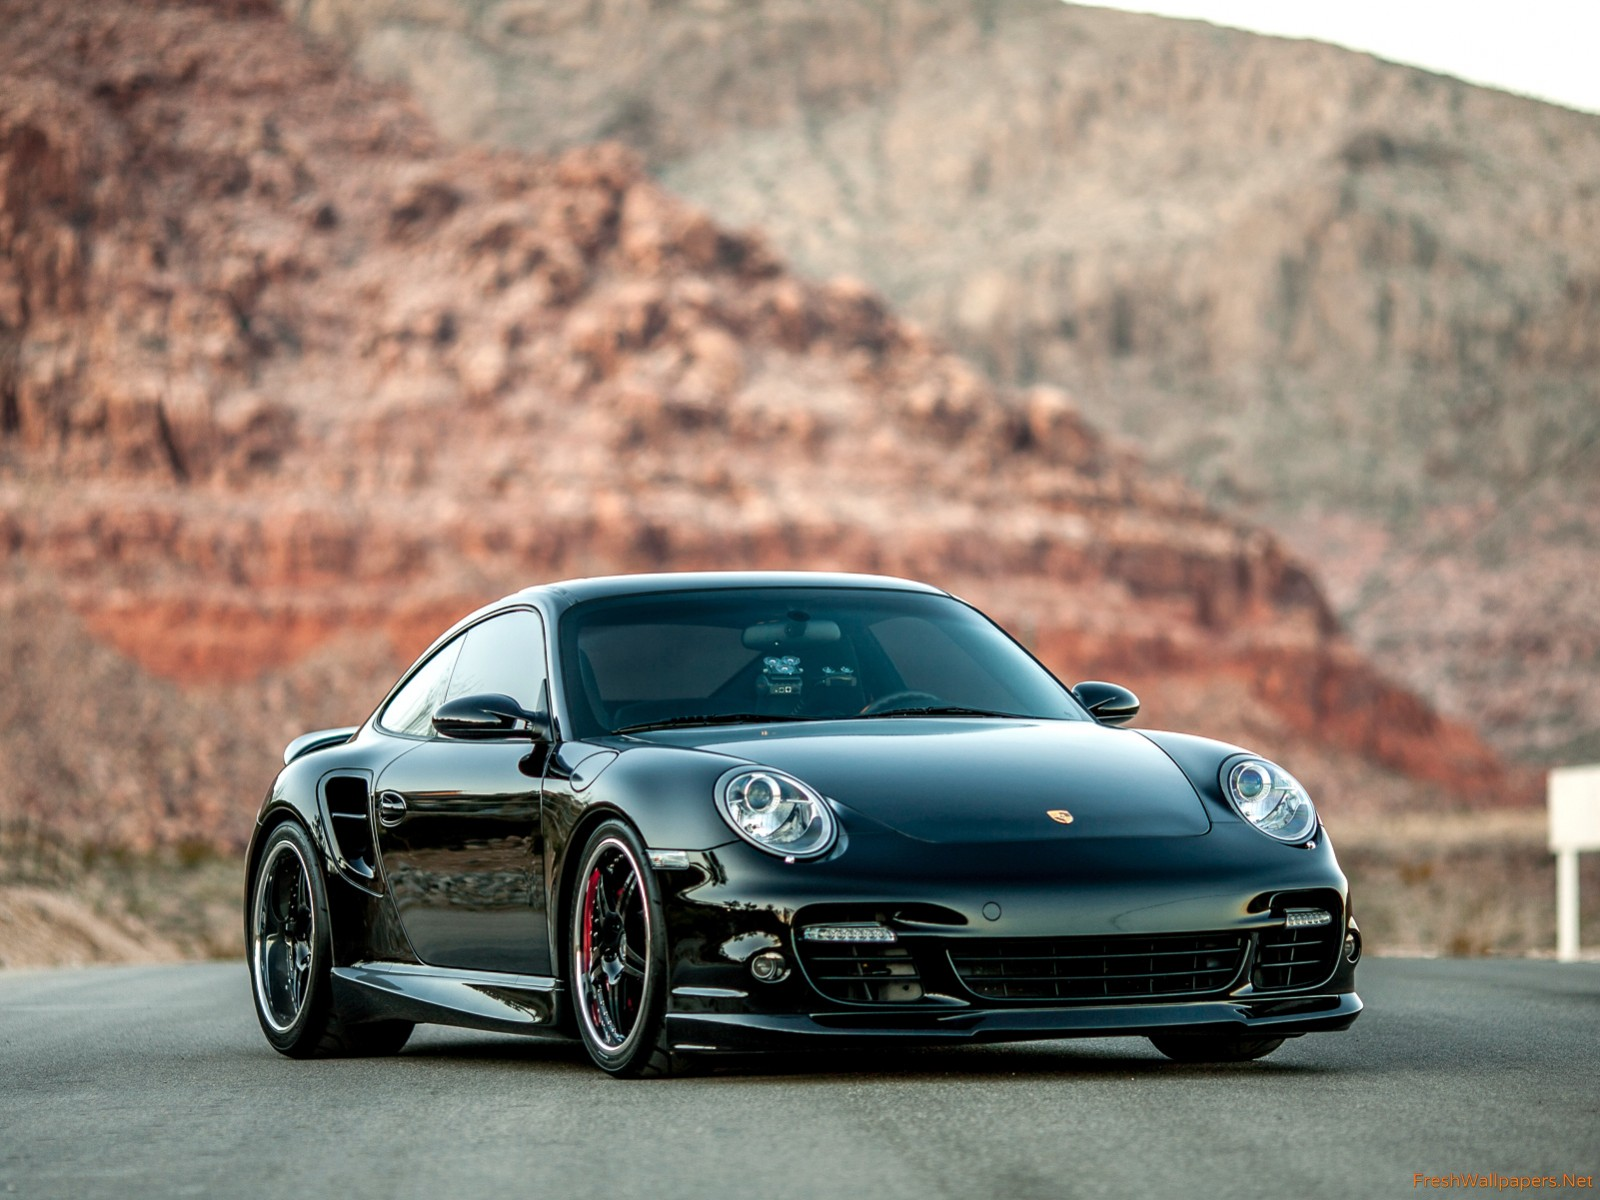 Porsche 911 Turbo Wallpapers and Background Images   stmednet 1600x1200